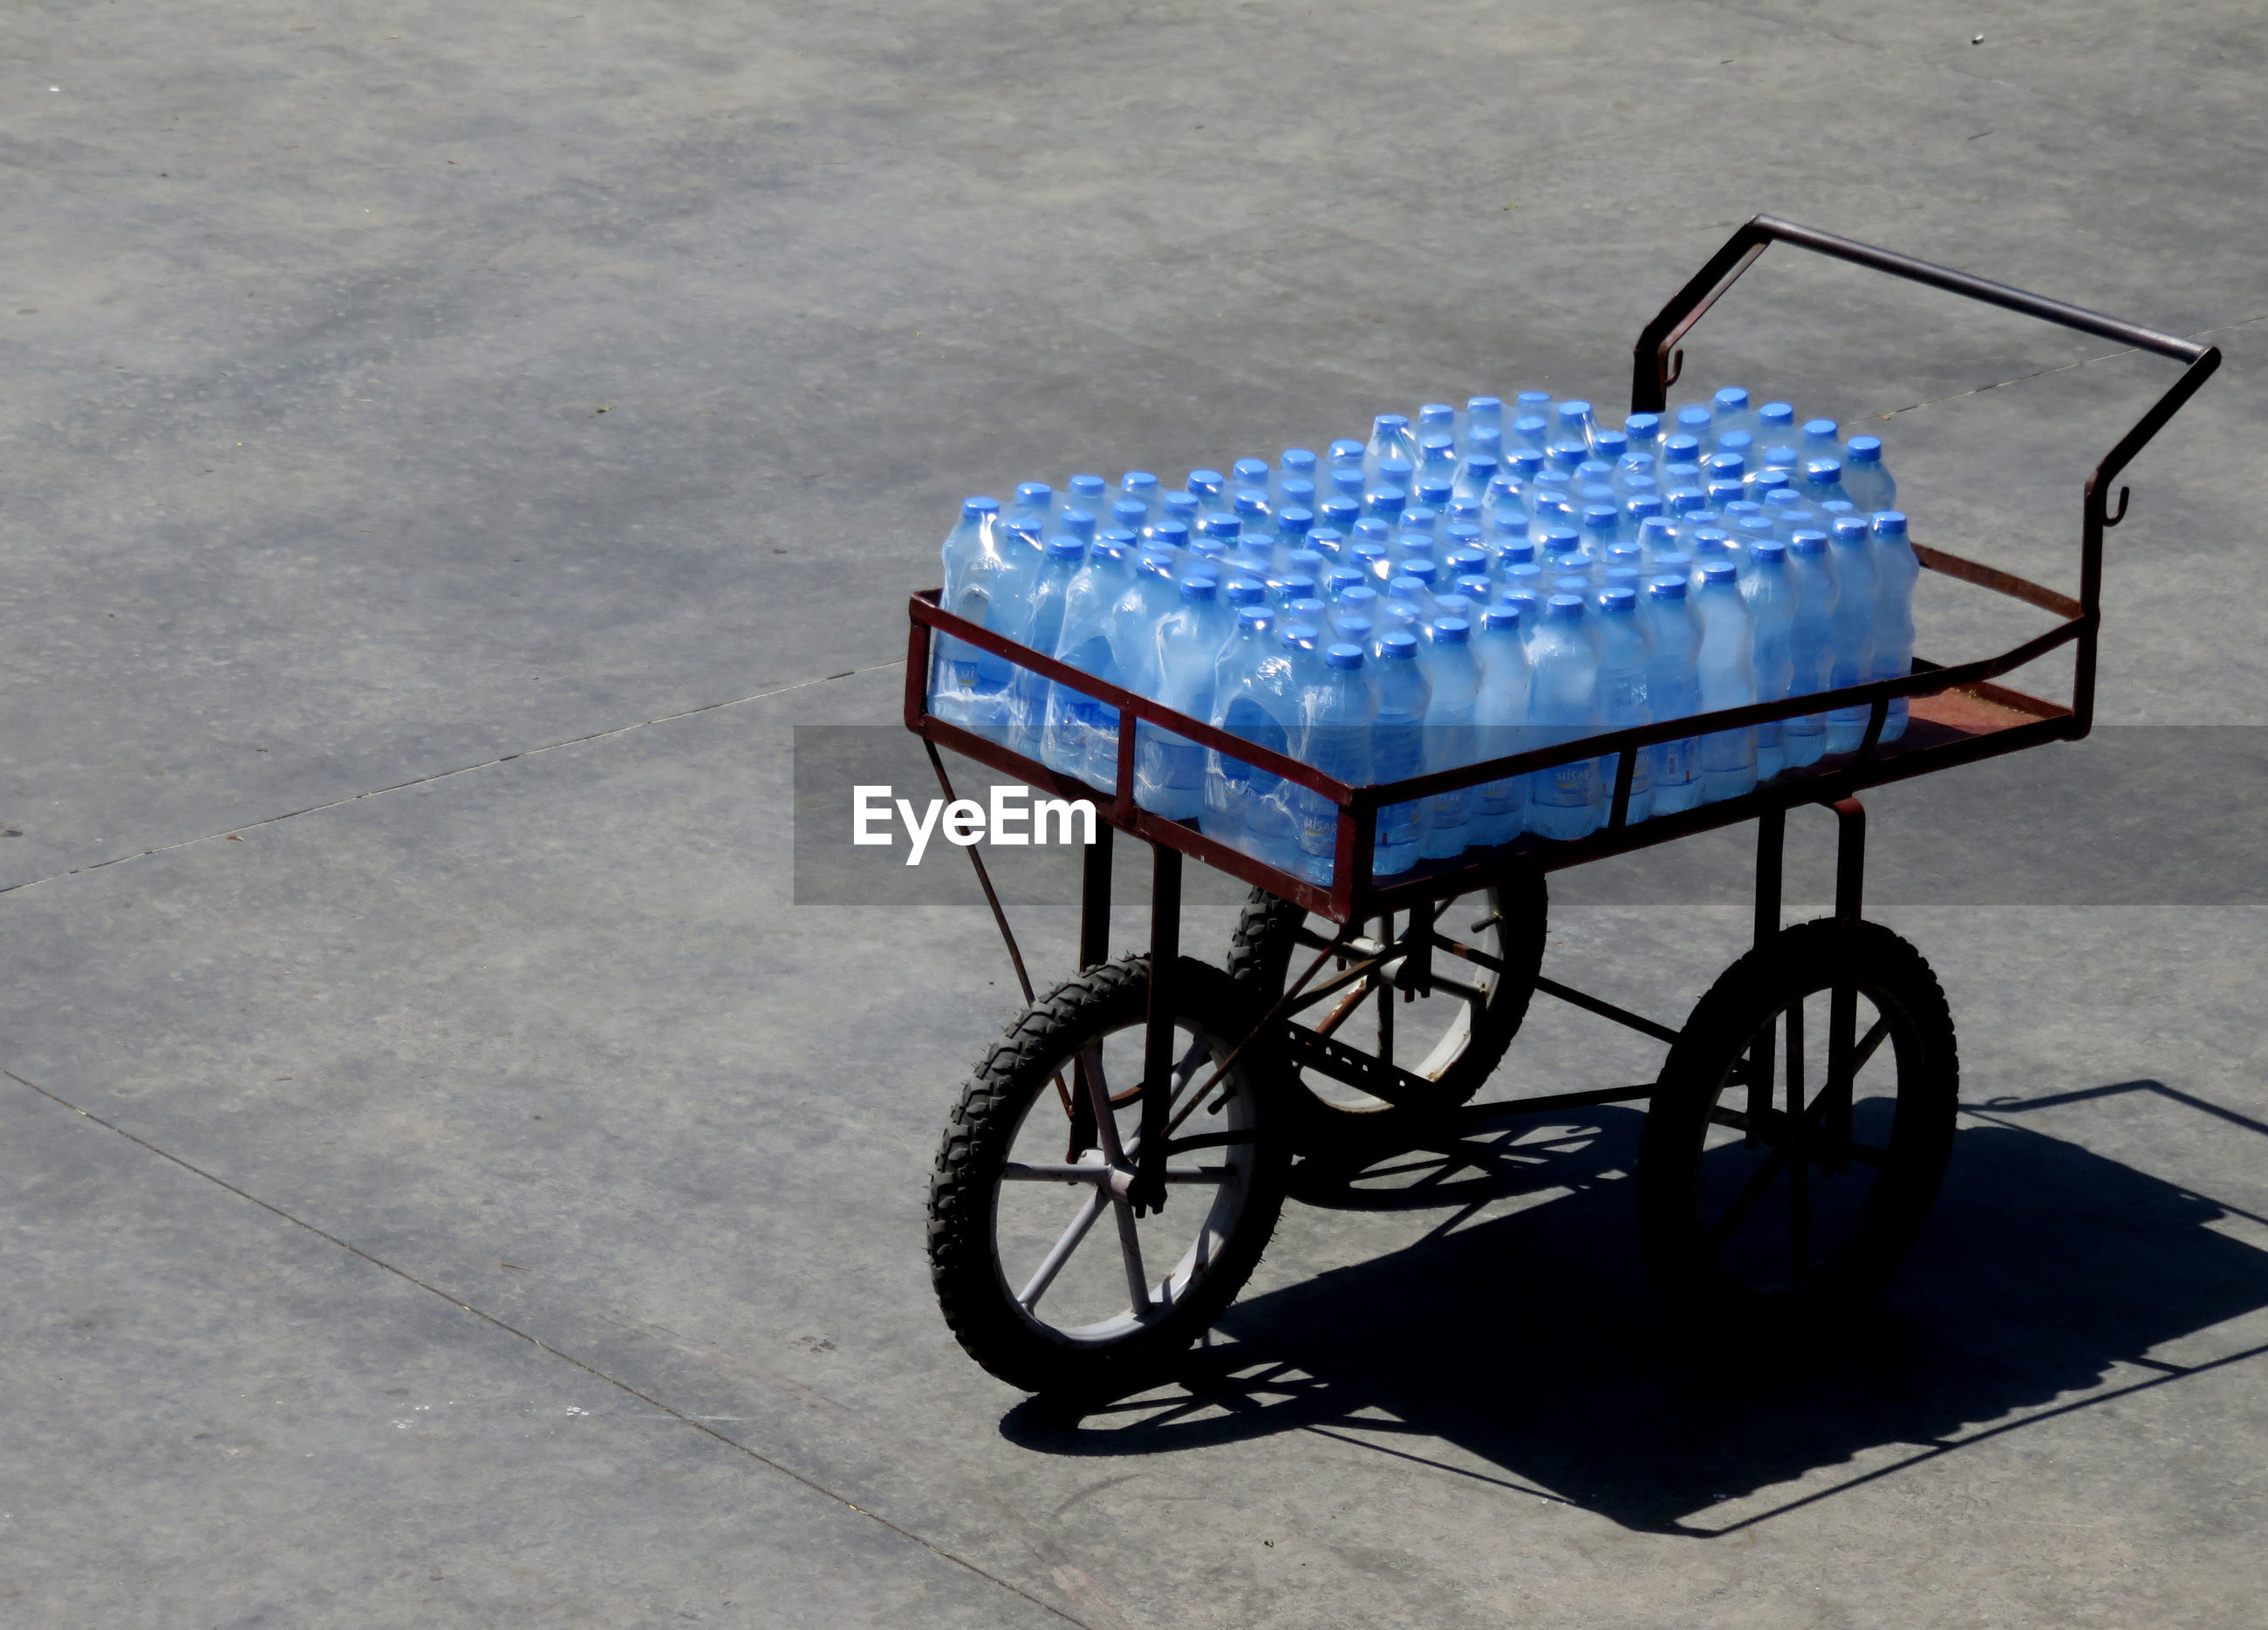 High angle view of bicycle with basket of water bottles